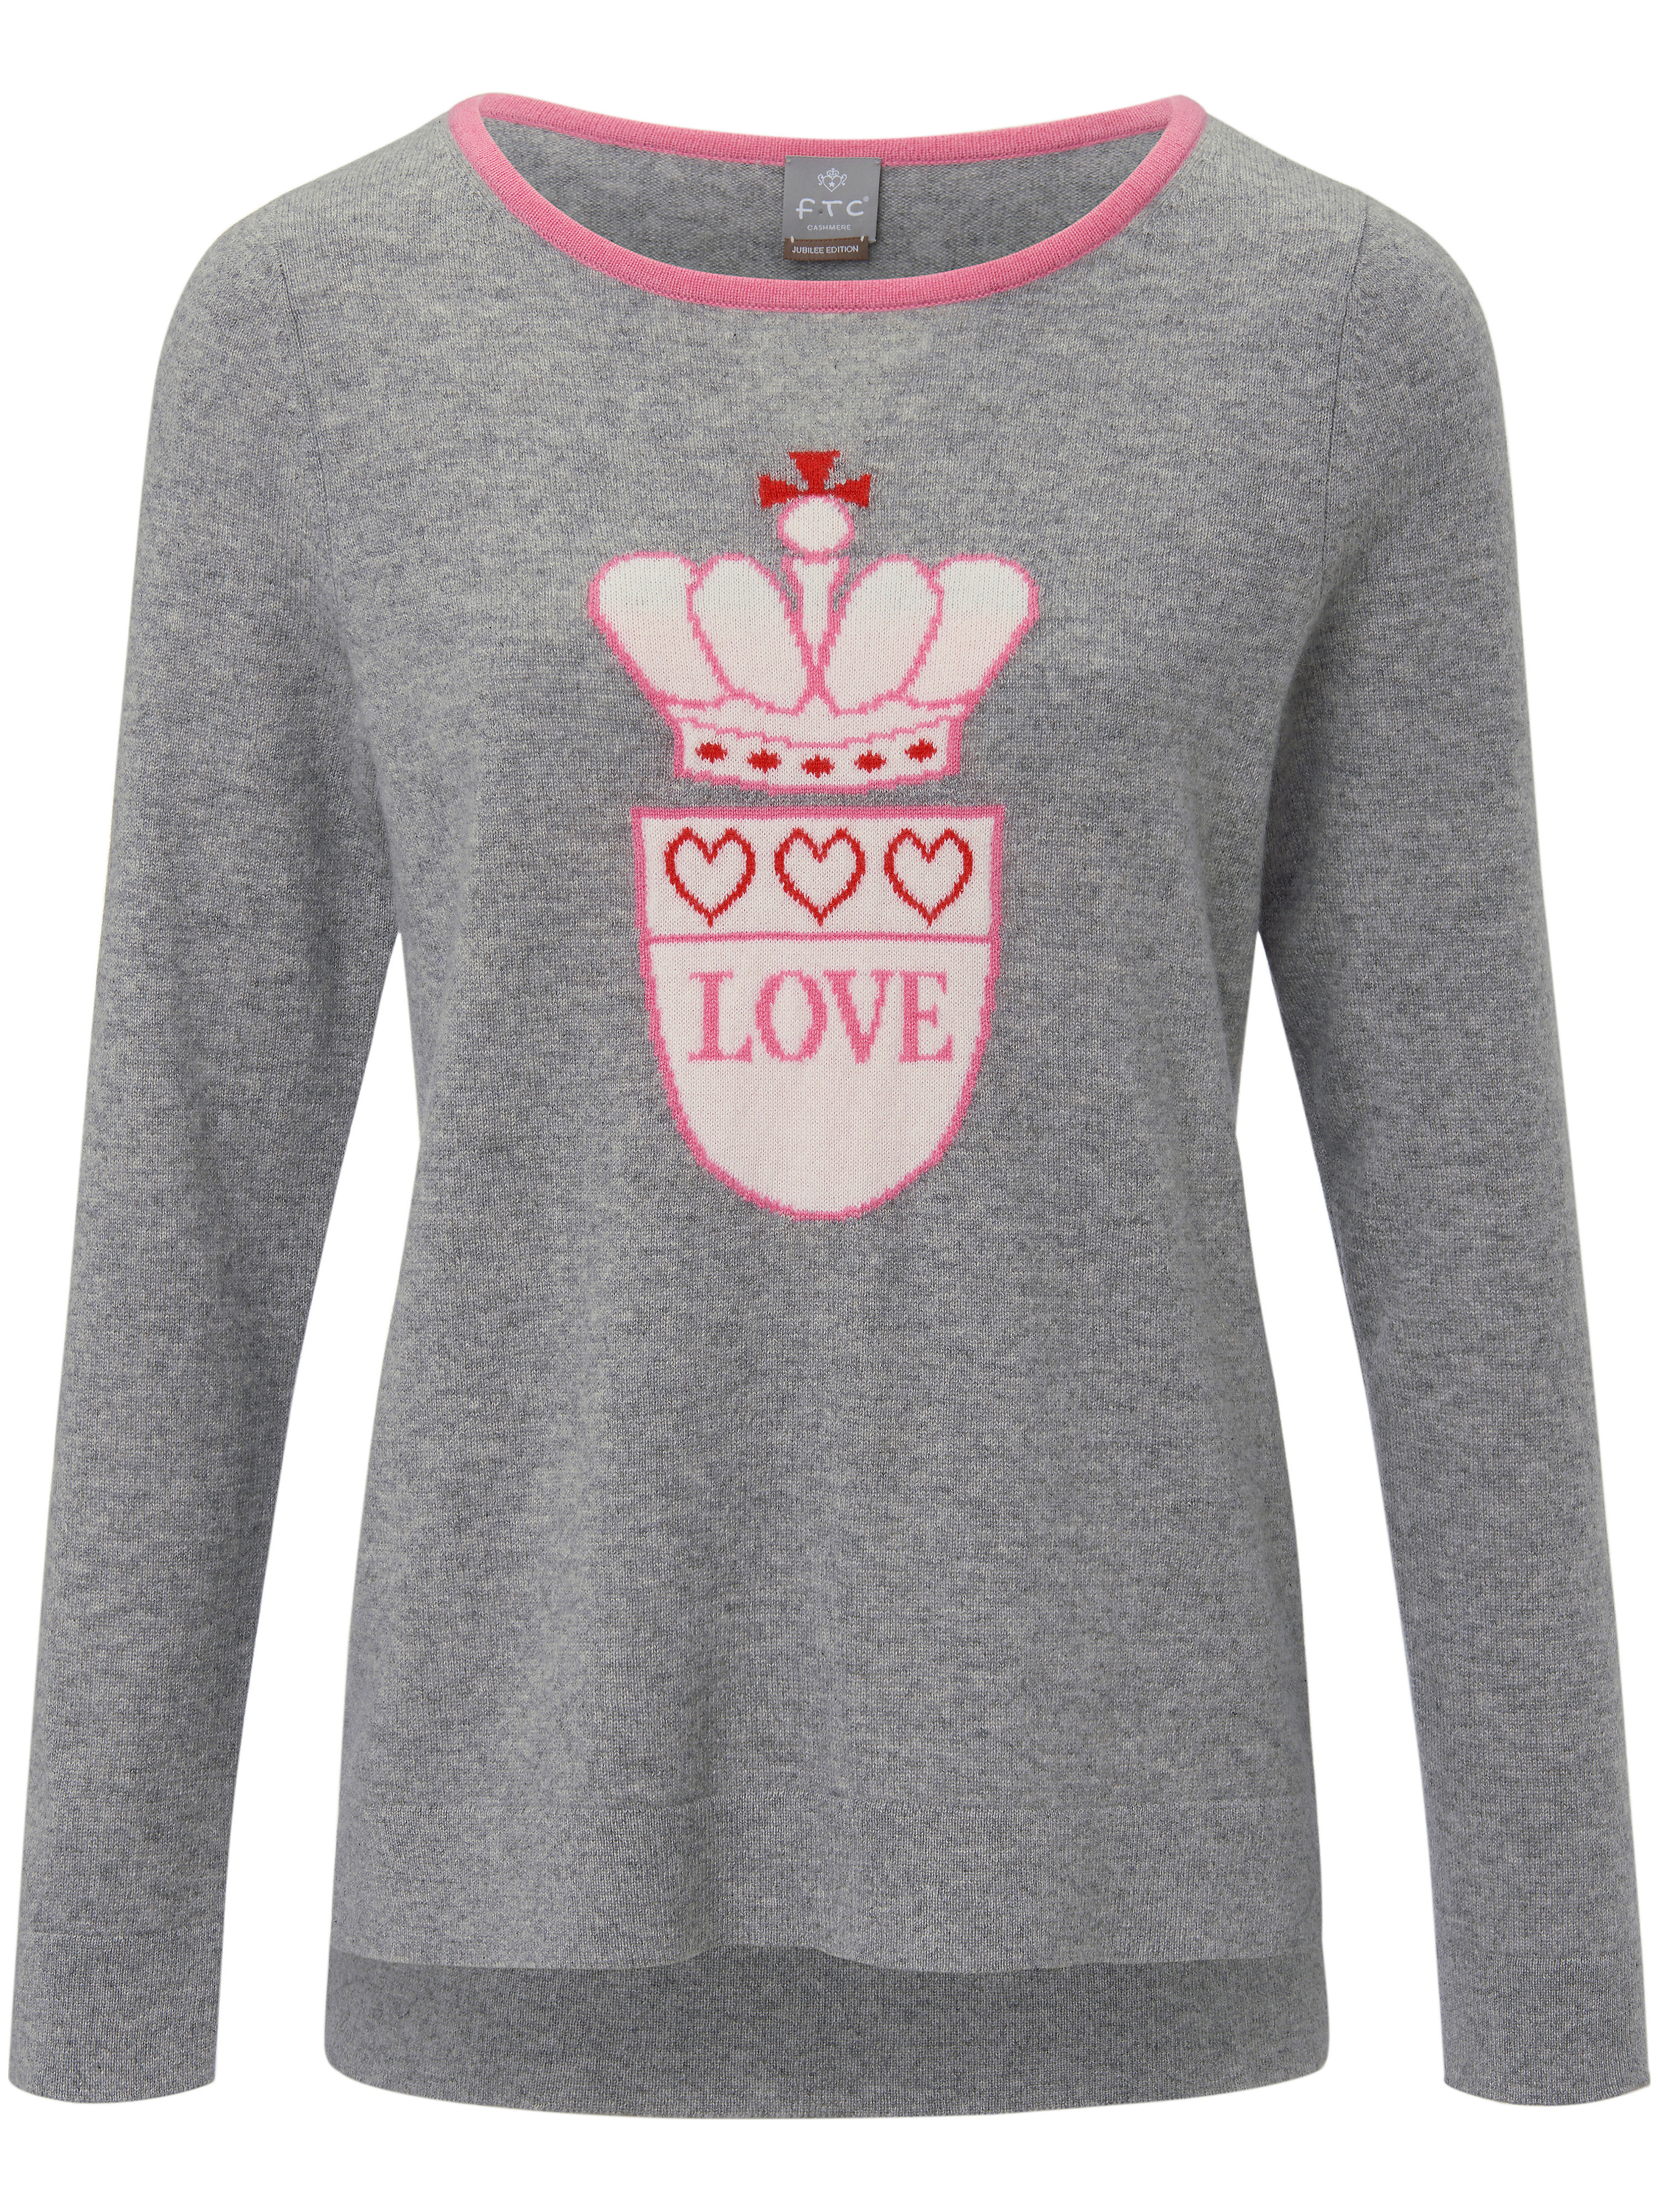 Le pull 100% cachemire  FTC Cashmere gris taille 38